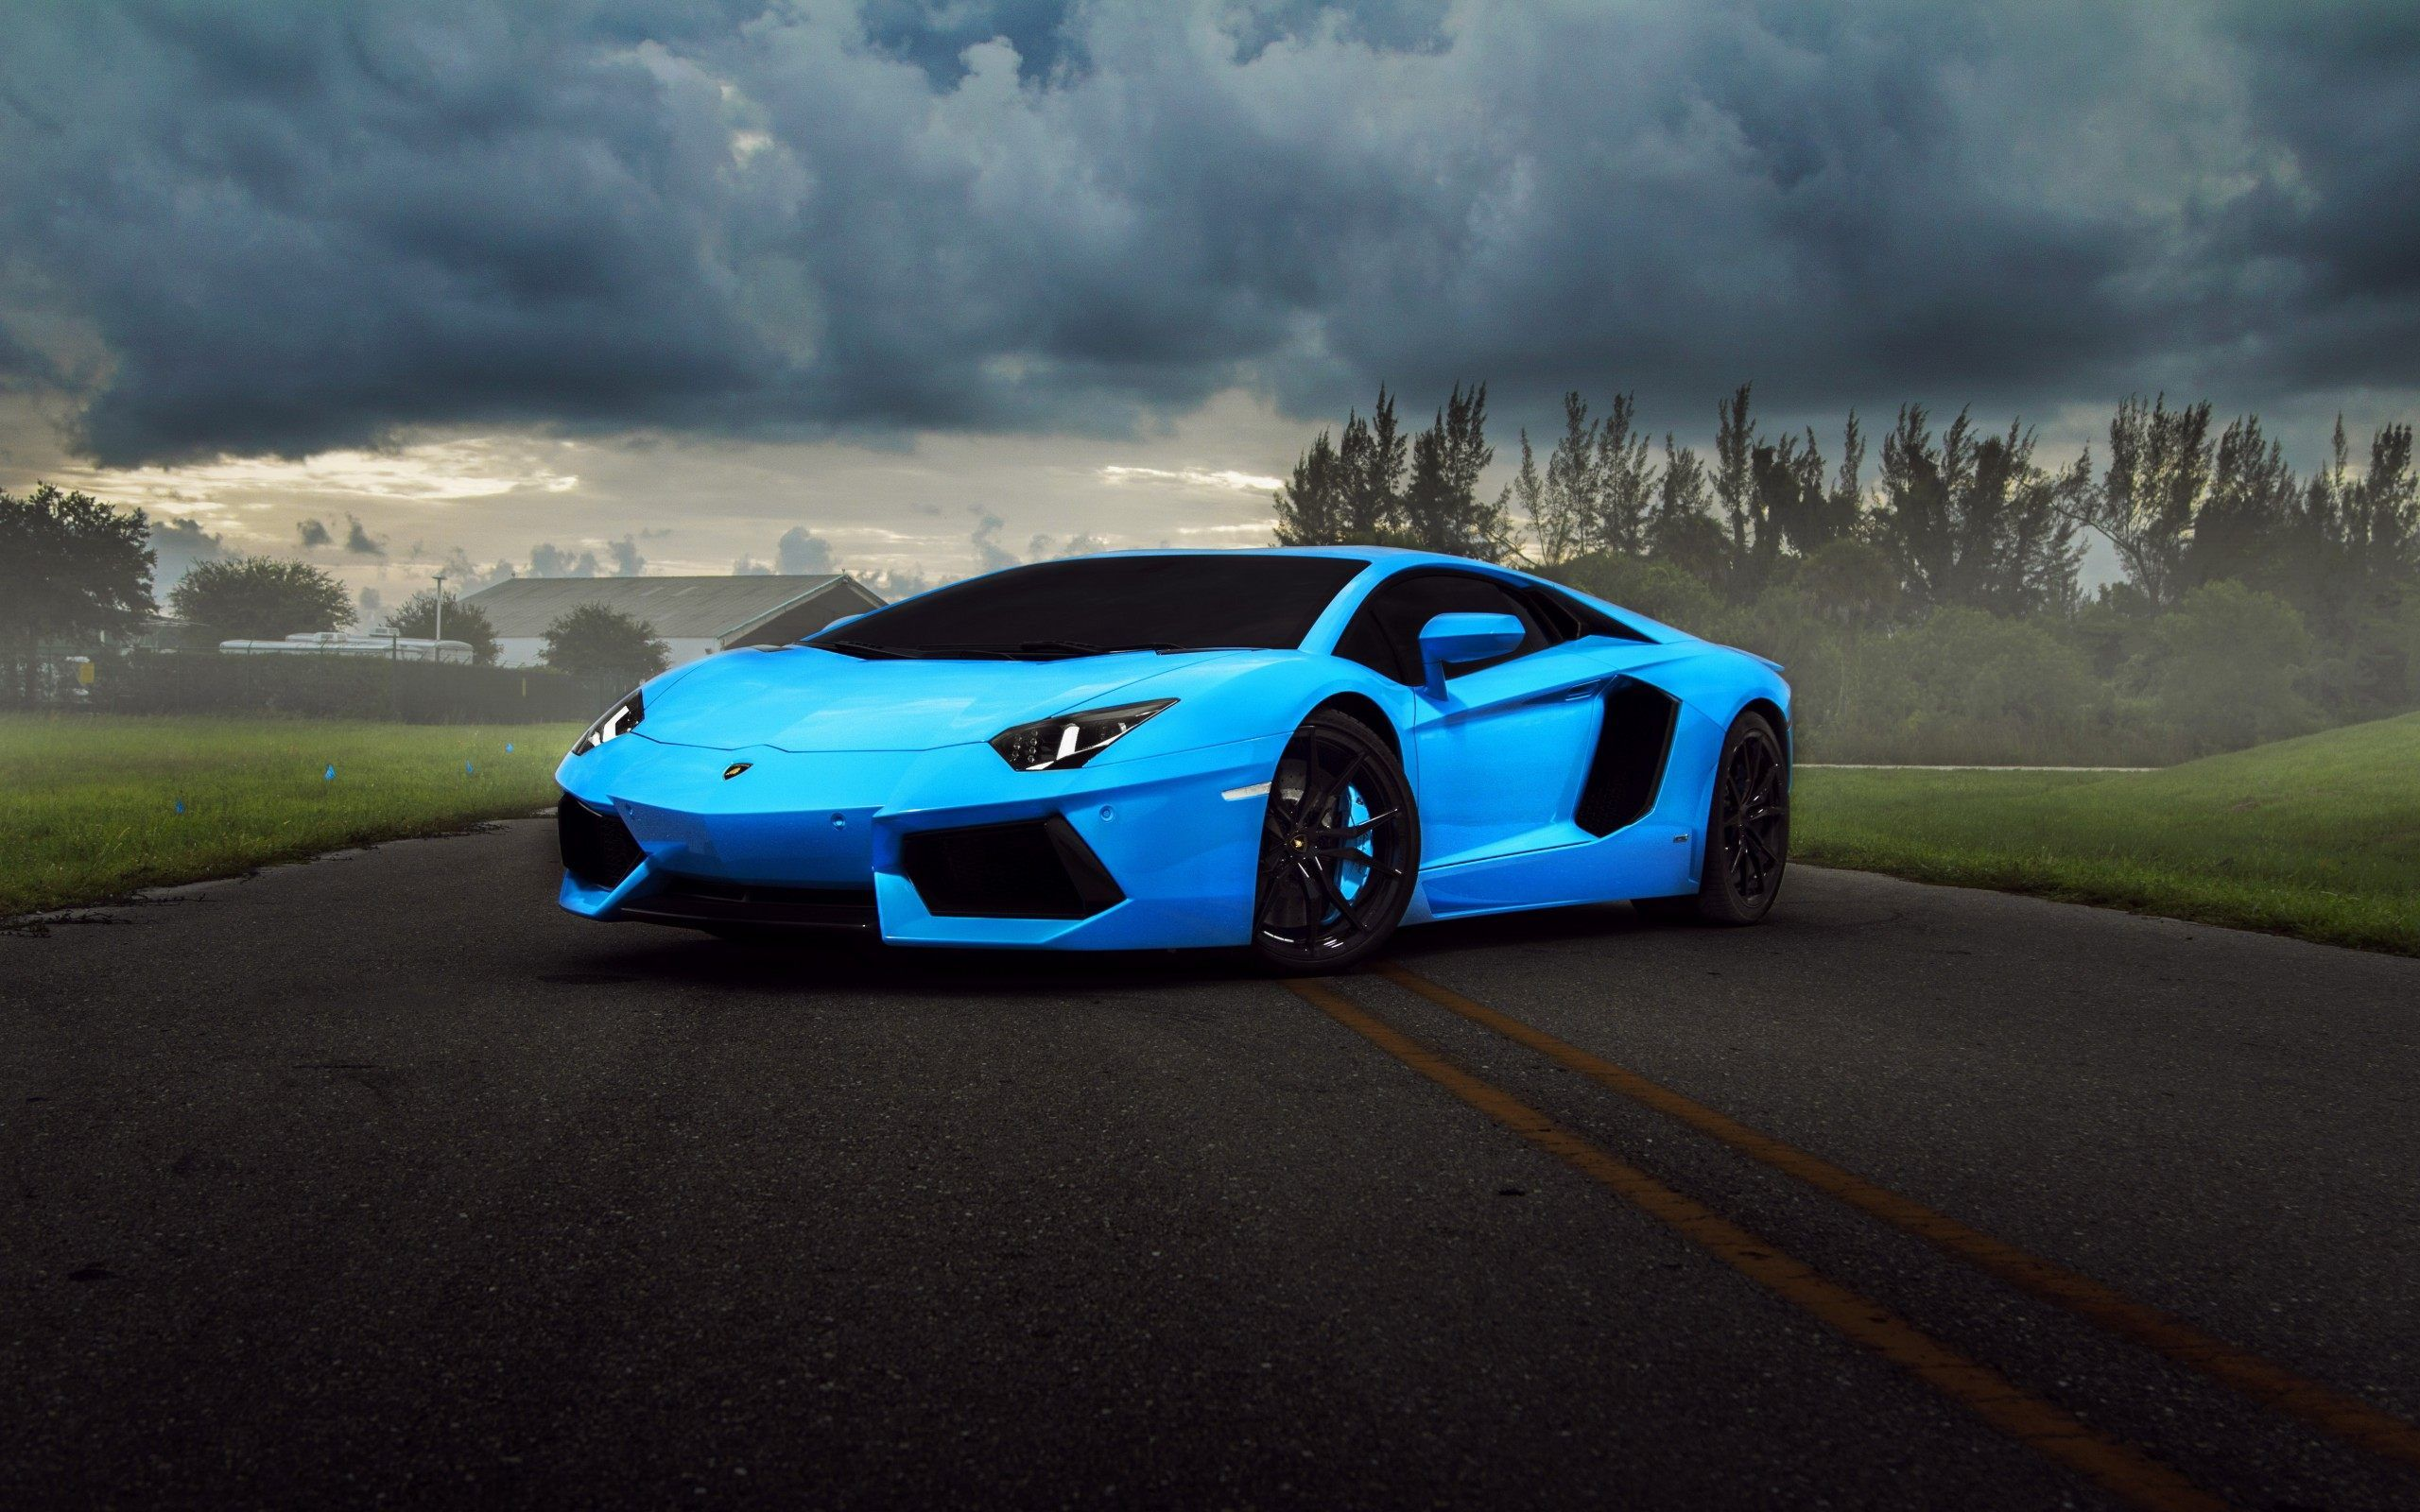 blue lamborghini wallpapers free | vehicles wallpapers | pinterest